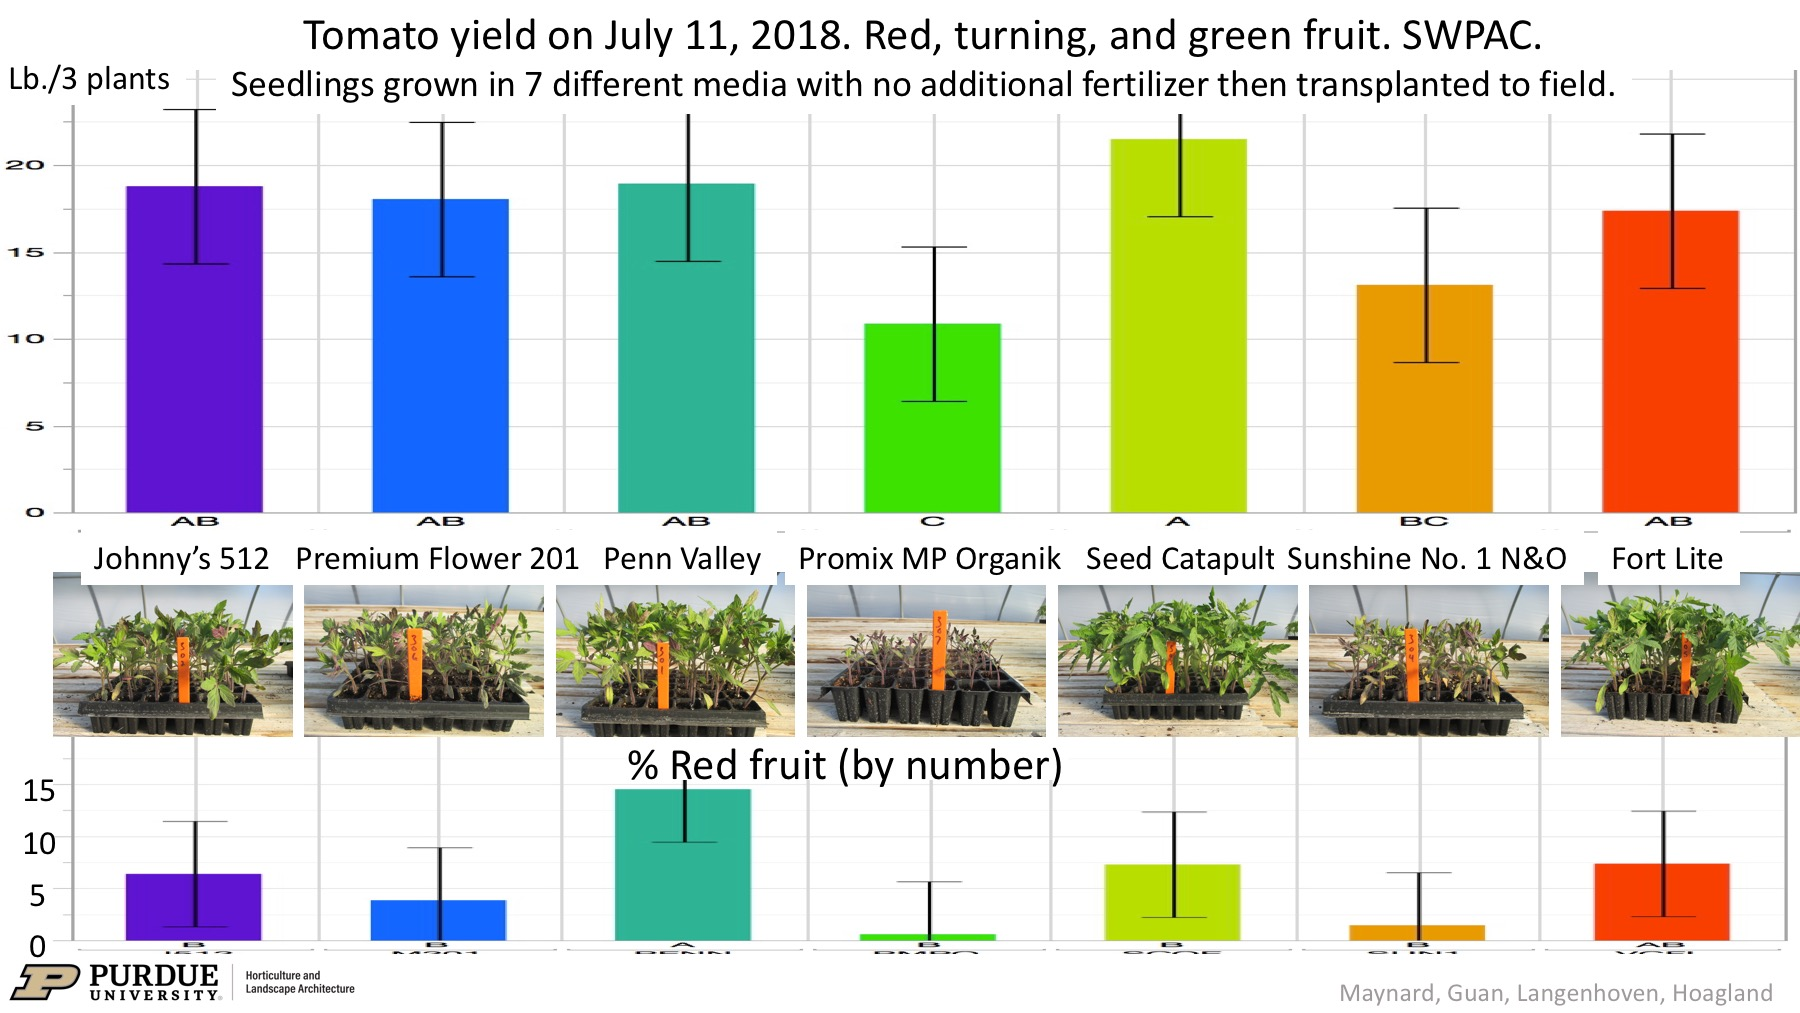 Figure 1. Early tomato fruit harvest and percent of fruit that are red from plants grown in seven different growing media and then transplanted to the field with no additional fertilizer. Yield in lb./3 plants includes all red, green, and turning fruit on plants. Bars with labeled with the same letter do not differ significantly based on Fisher's protected LSD. Error bars represent ± 95% confidence interval. Photos by W. Guan.